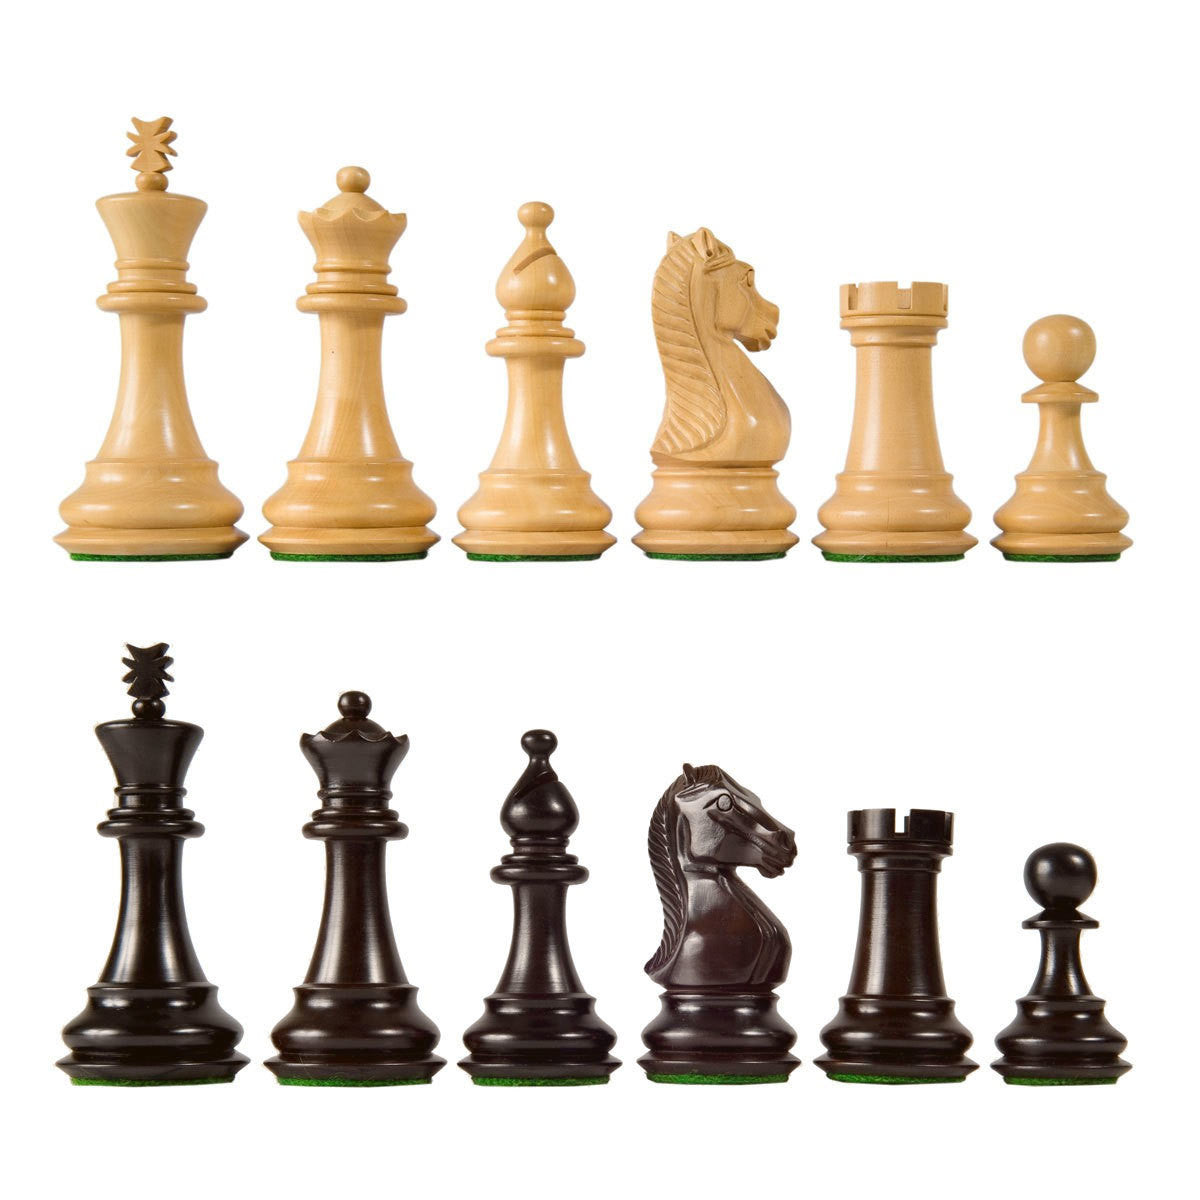 Majestic Staunton Wooden Chess Pieces